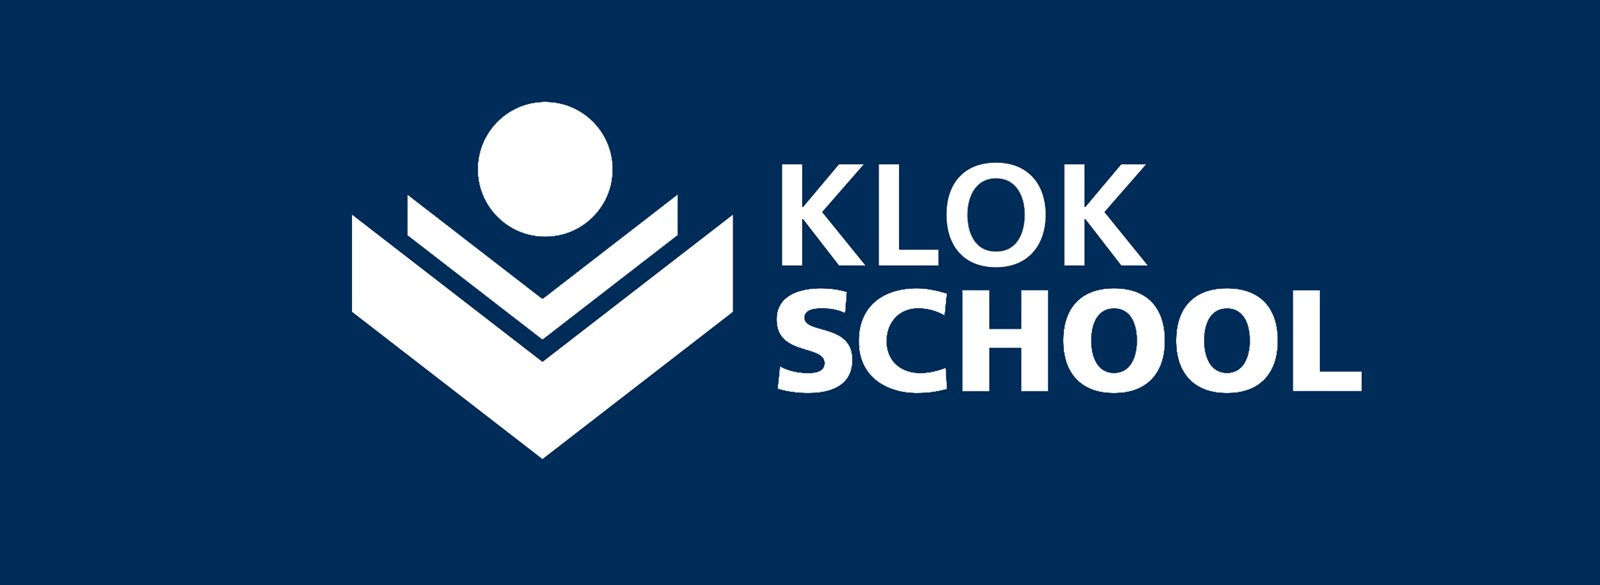 Klokschool-web-corporate.jpg (1)